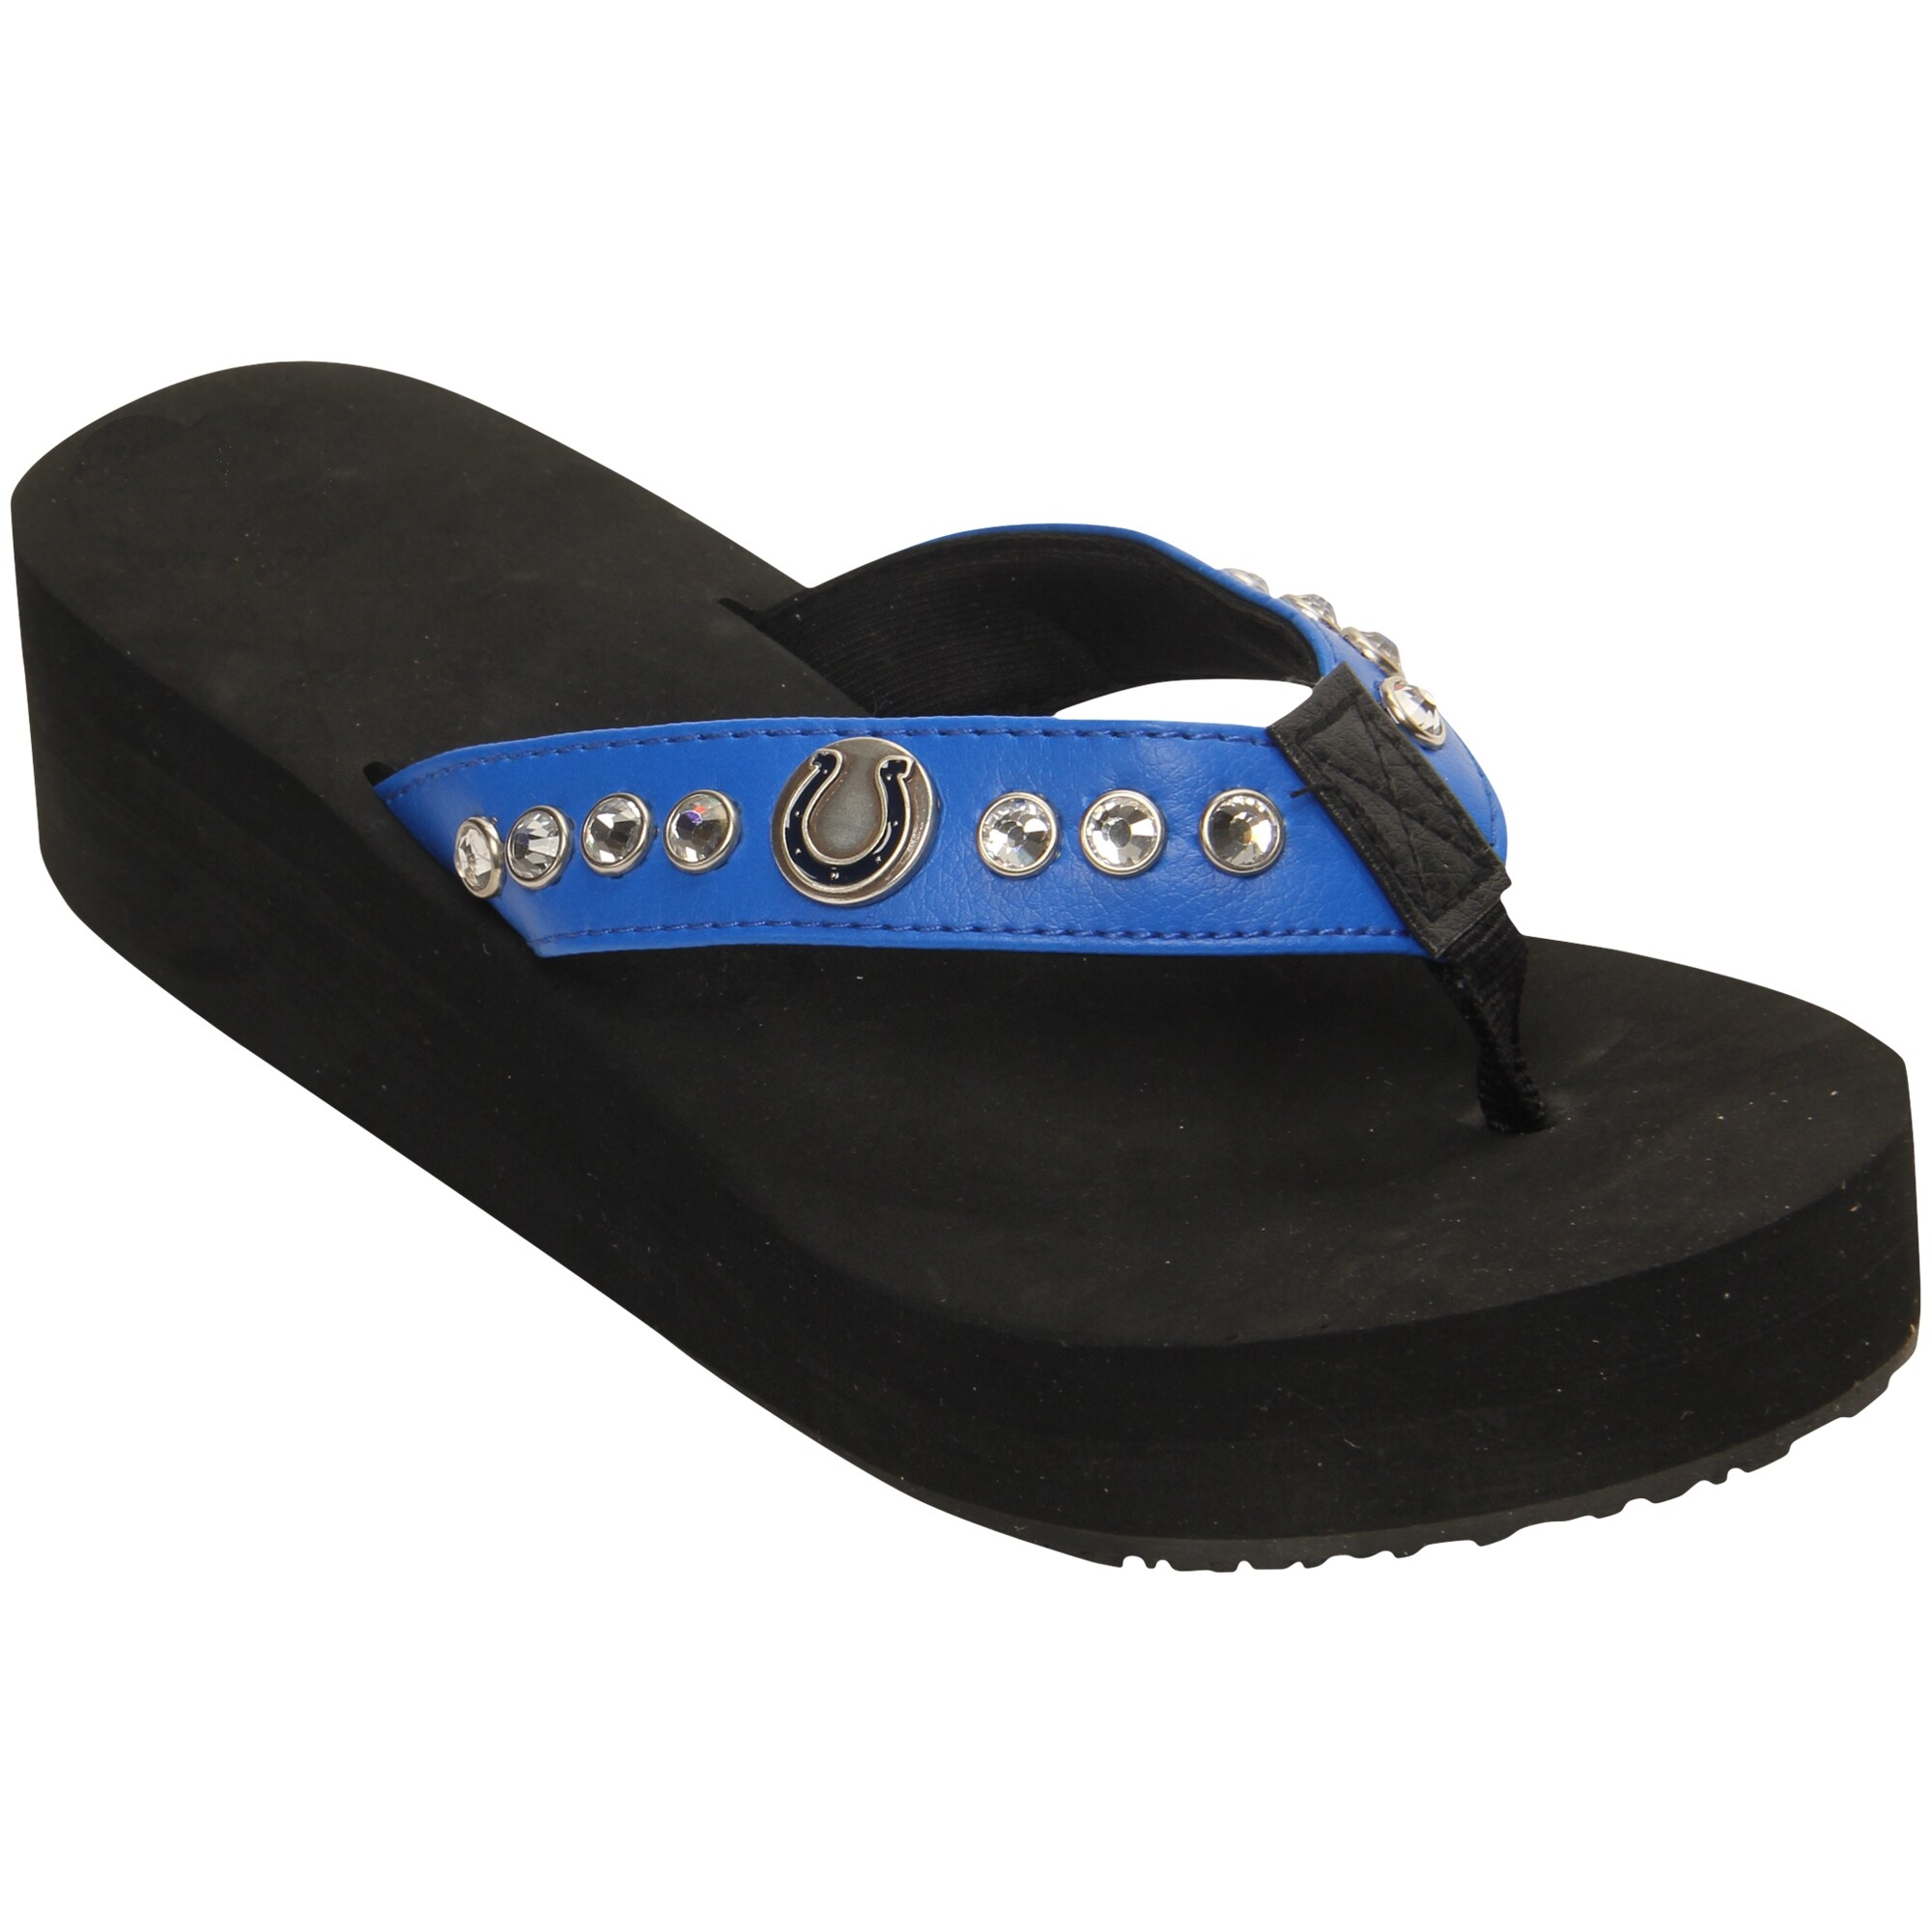 Indianapolis Colts Women's Wedge Flip Flops -